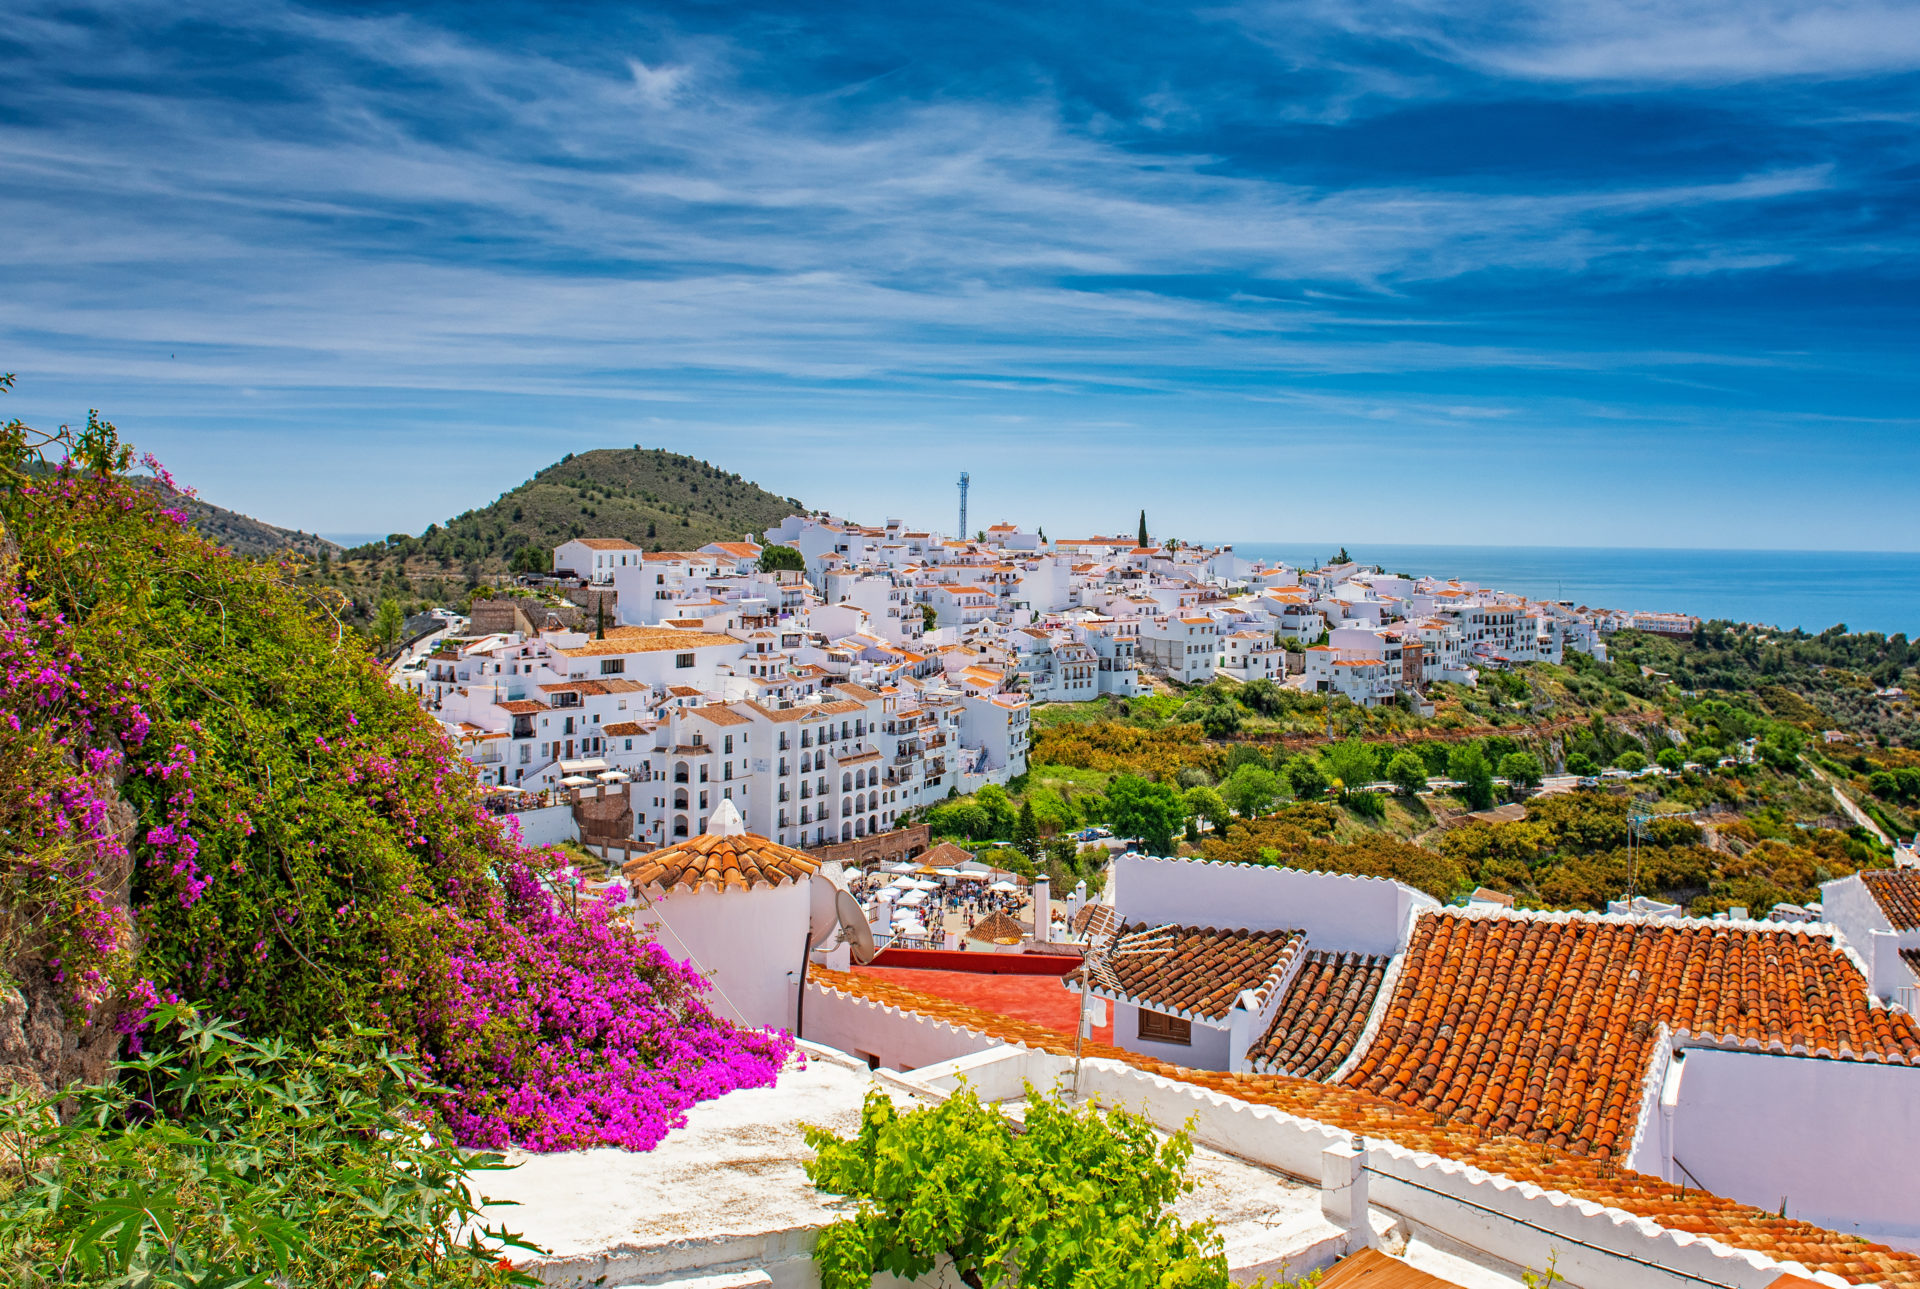 Gleaming in the sunshine, houses in Frigiliana, Spain